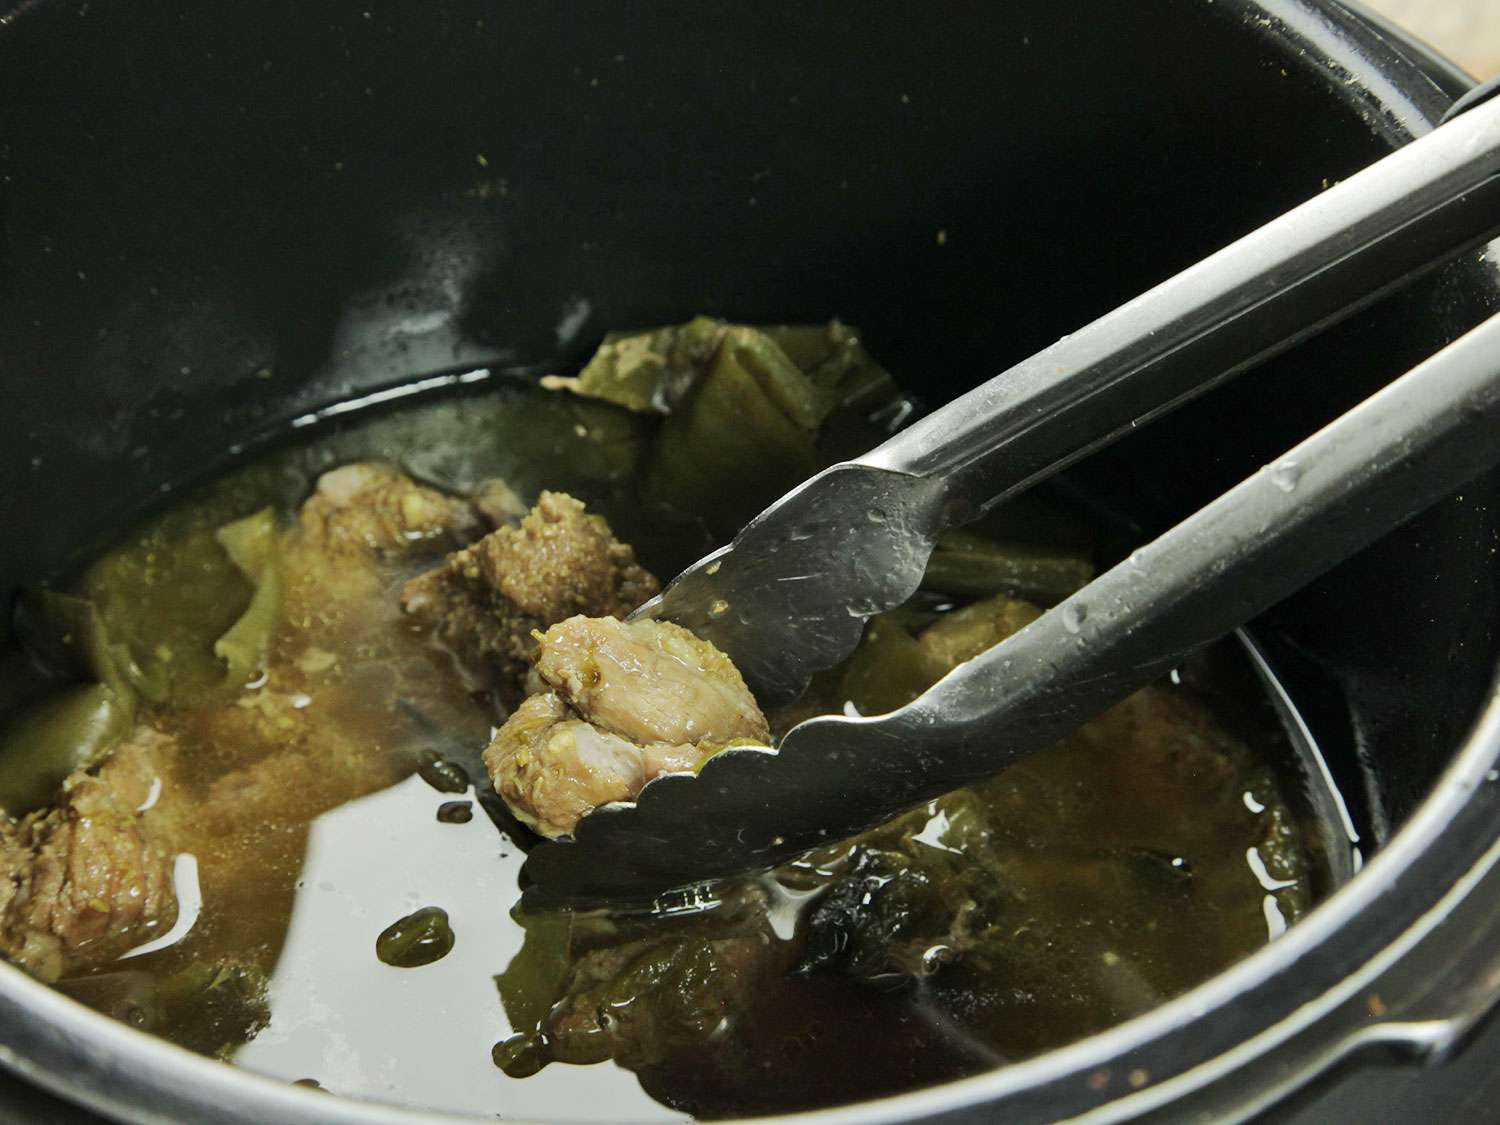 Tongs removing the pork from pressure cooker chile verde stew.